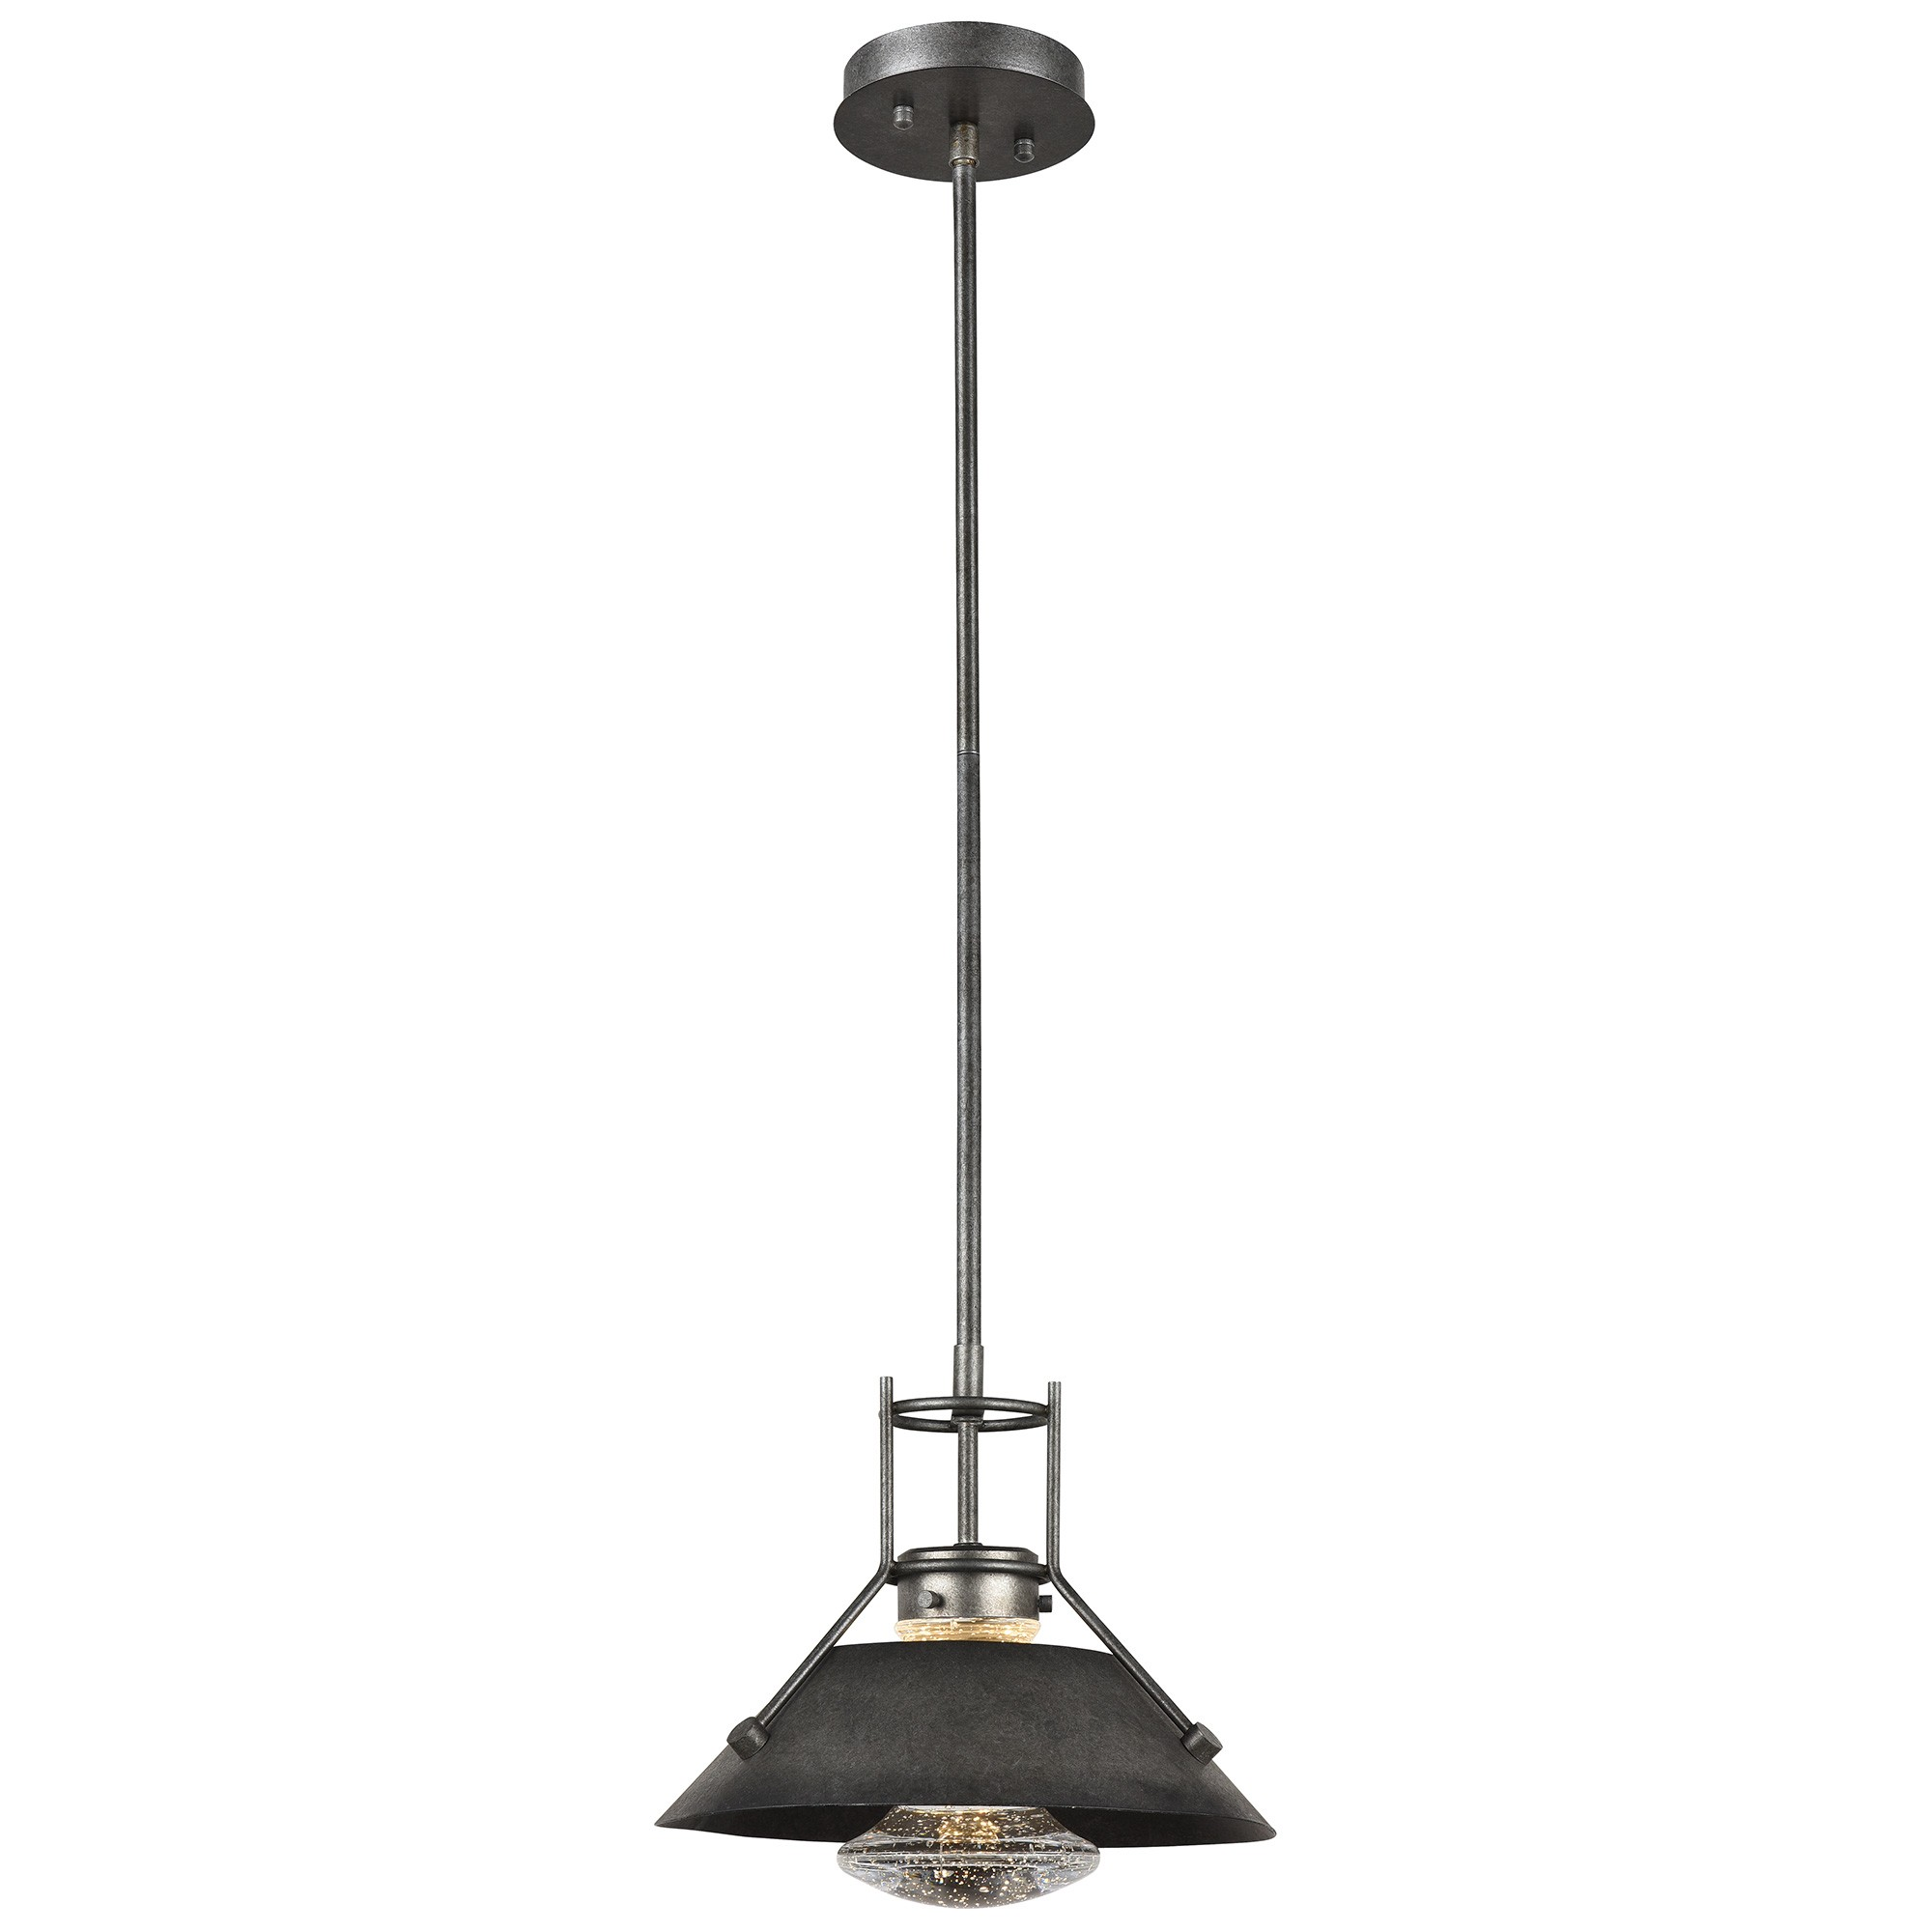 Elko Steel & Crystal Glass LED Pendent Light with Shade, Medium